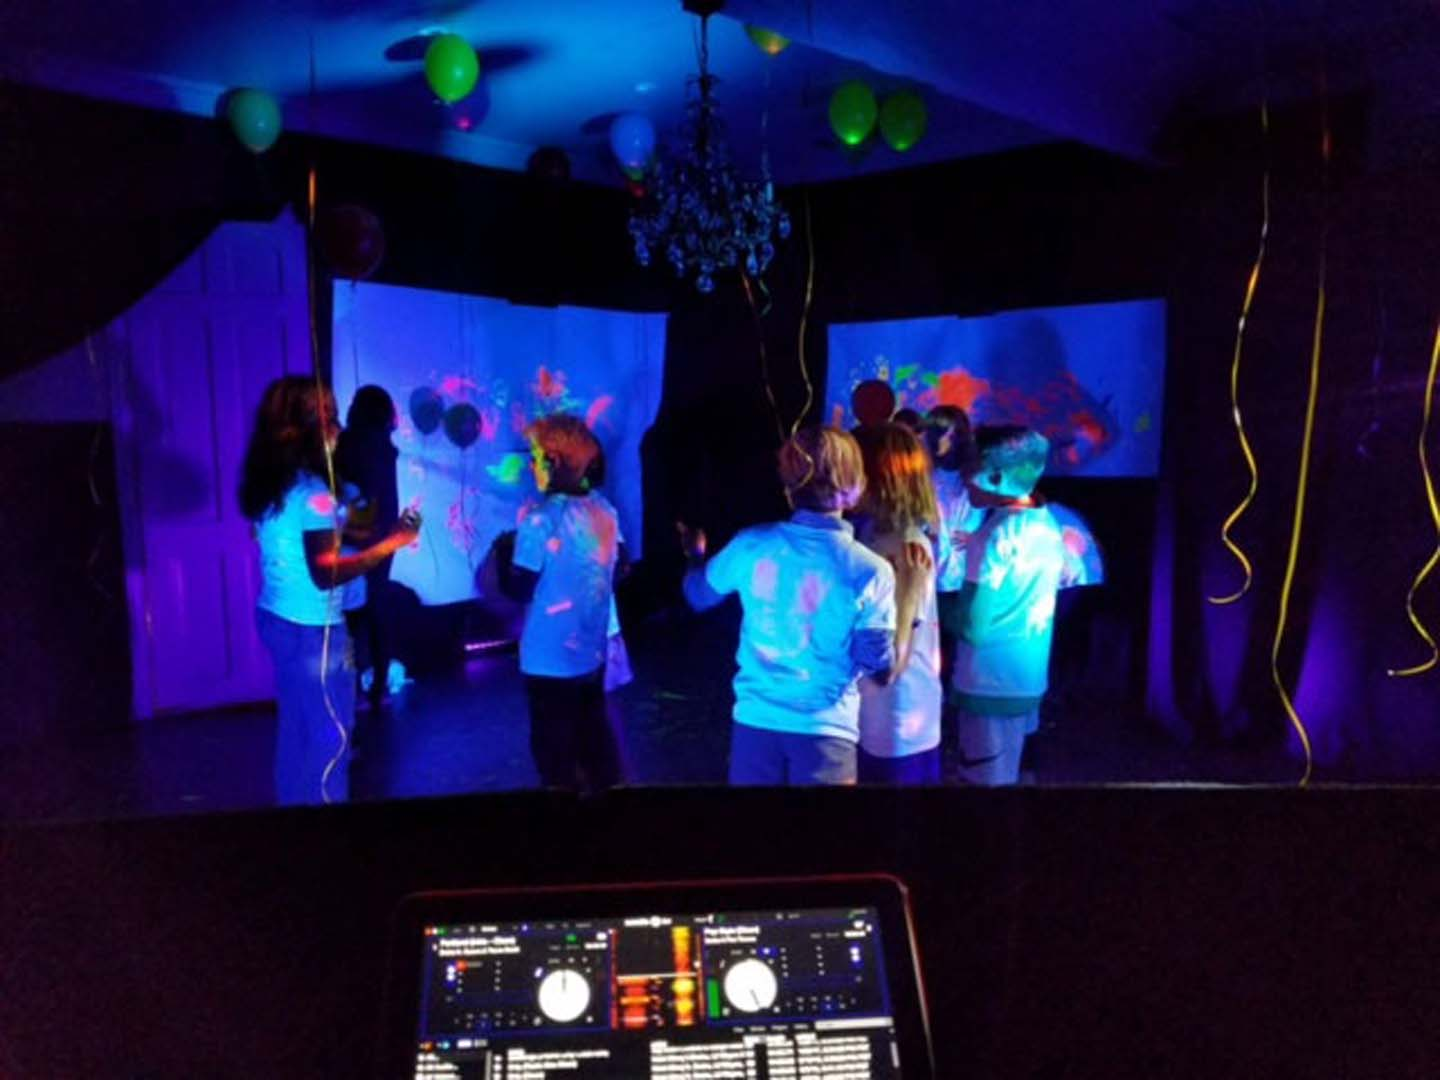 Interactive DJ experience image 4